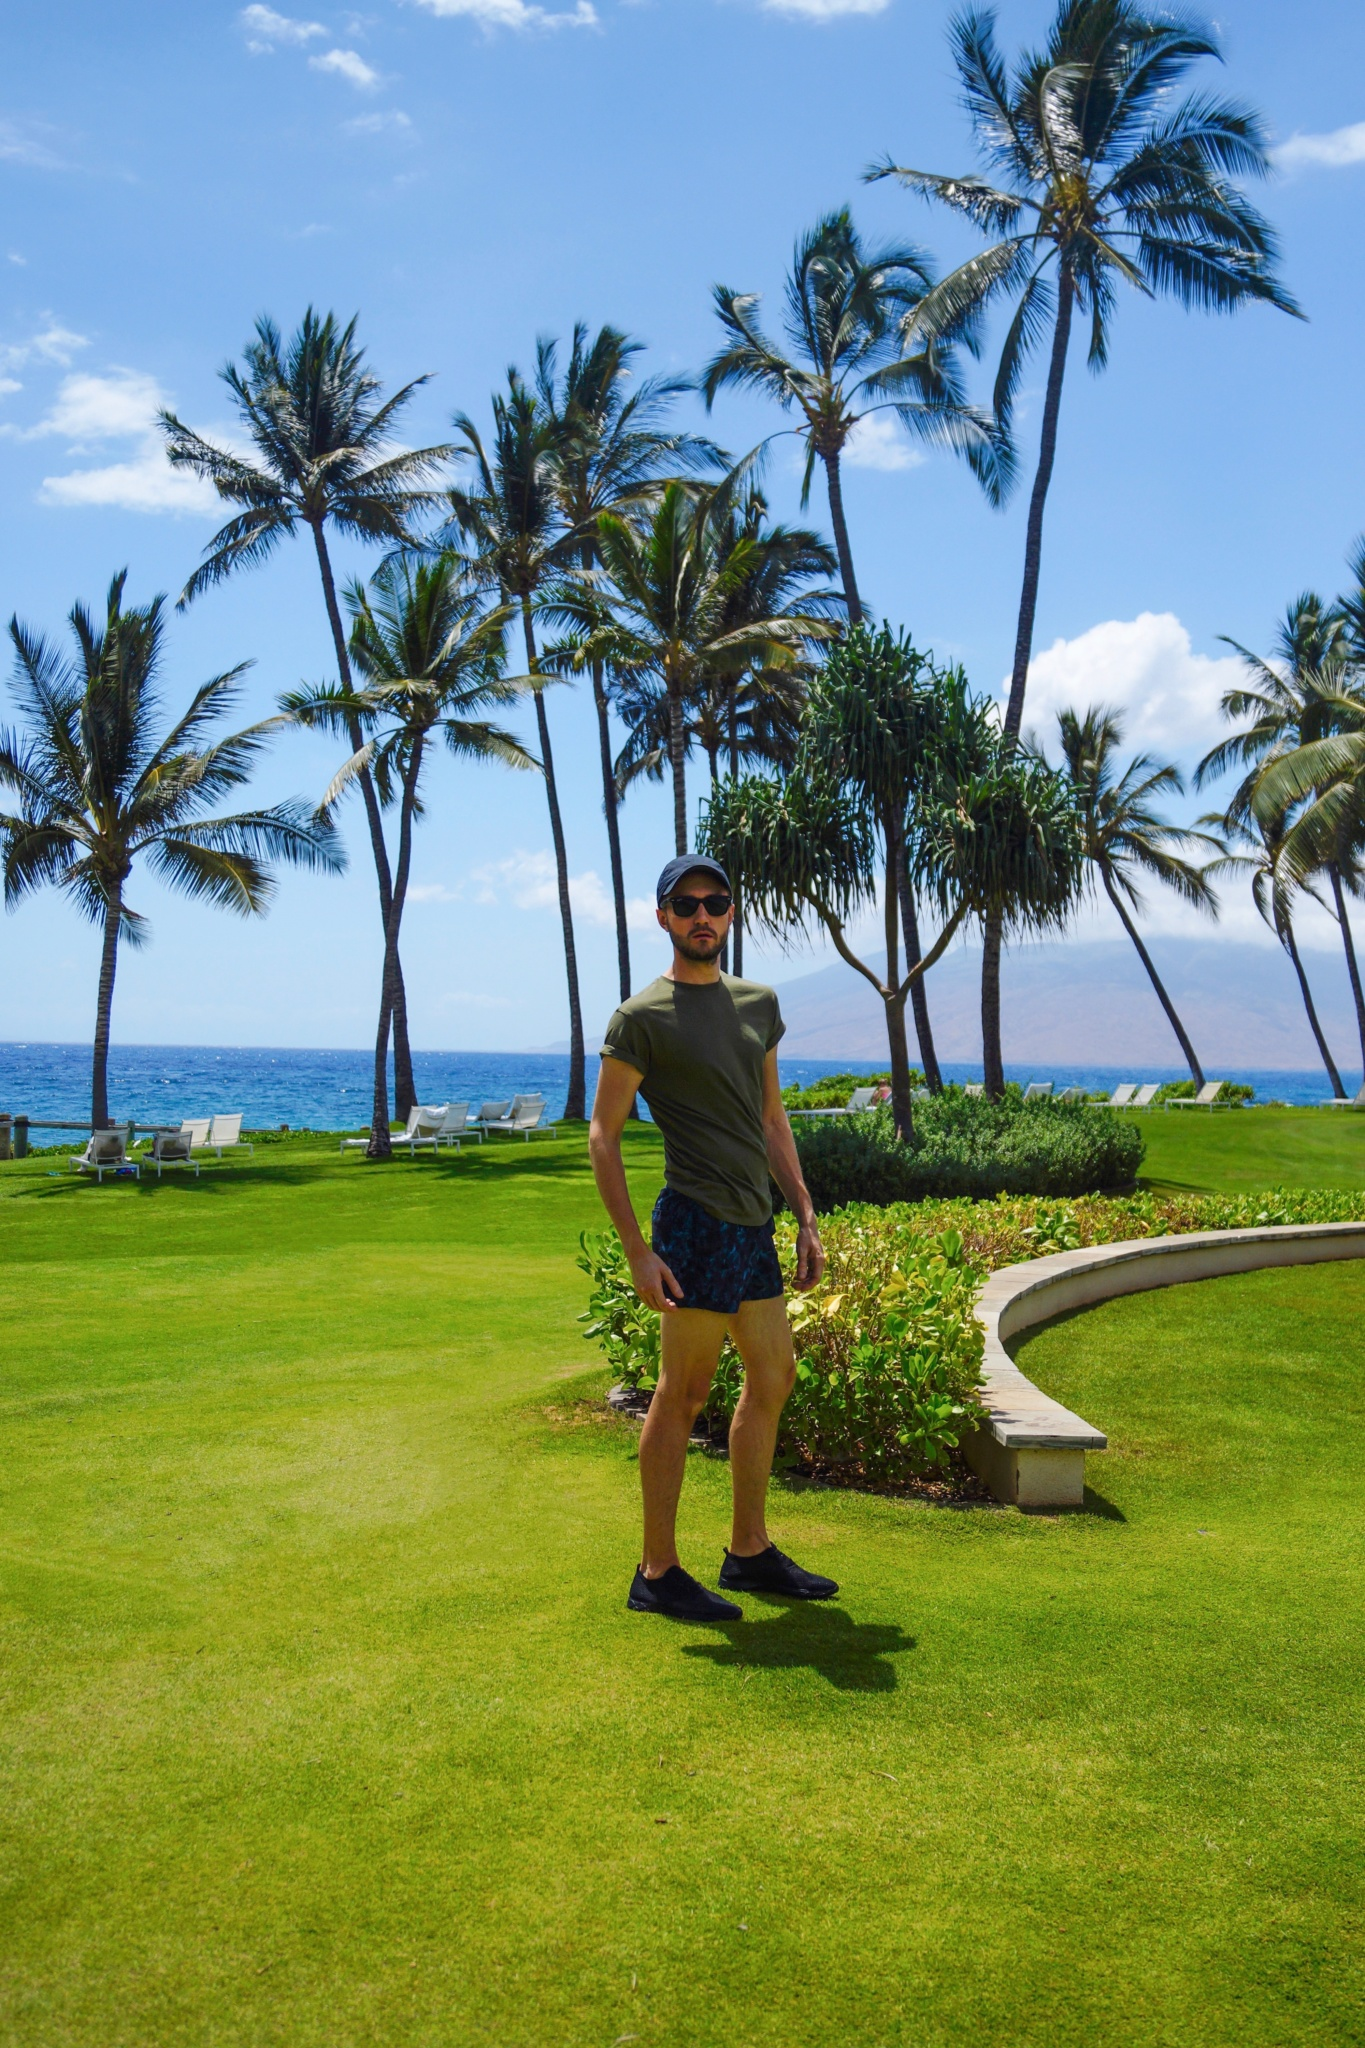 Topman Green Muscle T-Shirt - Topman Blue Camouflage Swim Shorts - Hawaii Maui Wailea - Andaz Maui at Wailea Resort - Summer - Beach - Killer Travel - Killer Style - Killer Look Travels - TheKillerLook.com - The Killer Look